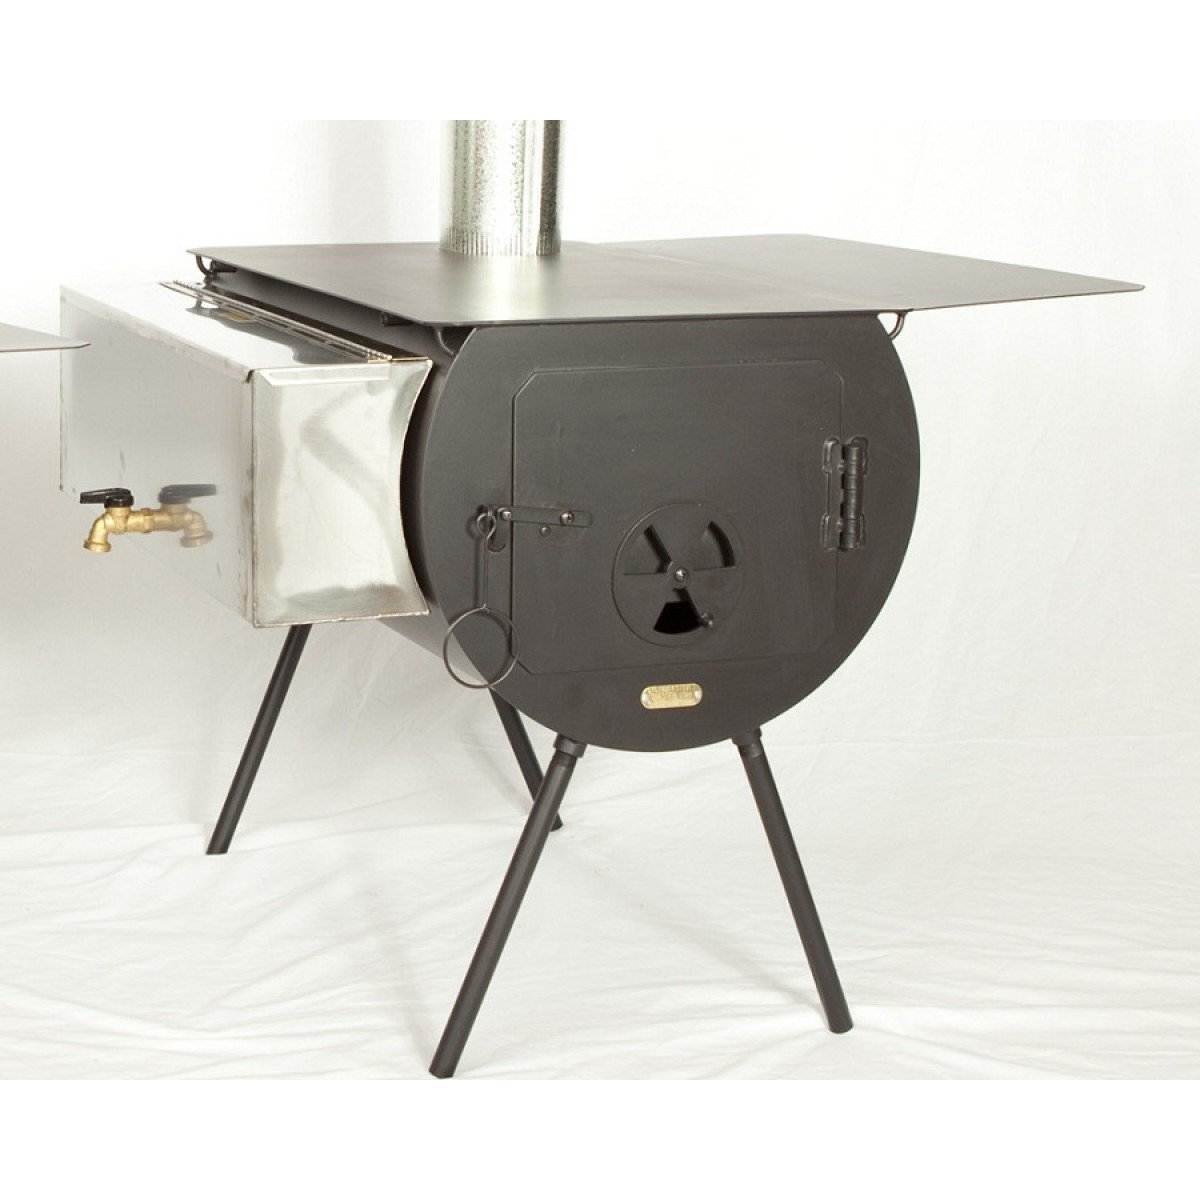 Yukon Tent Stove Package (with grate) - Wood Cylinder Stove